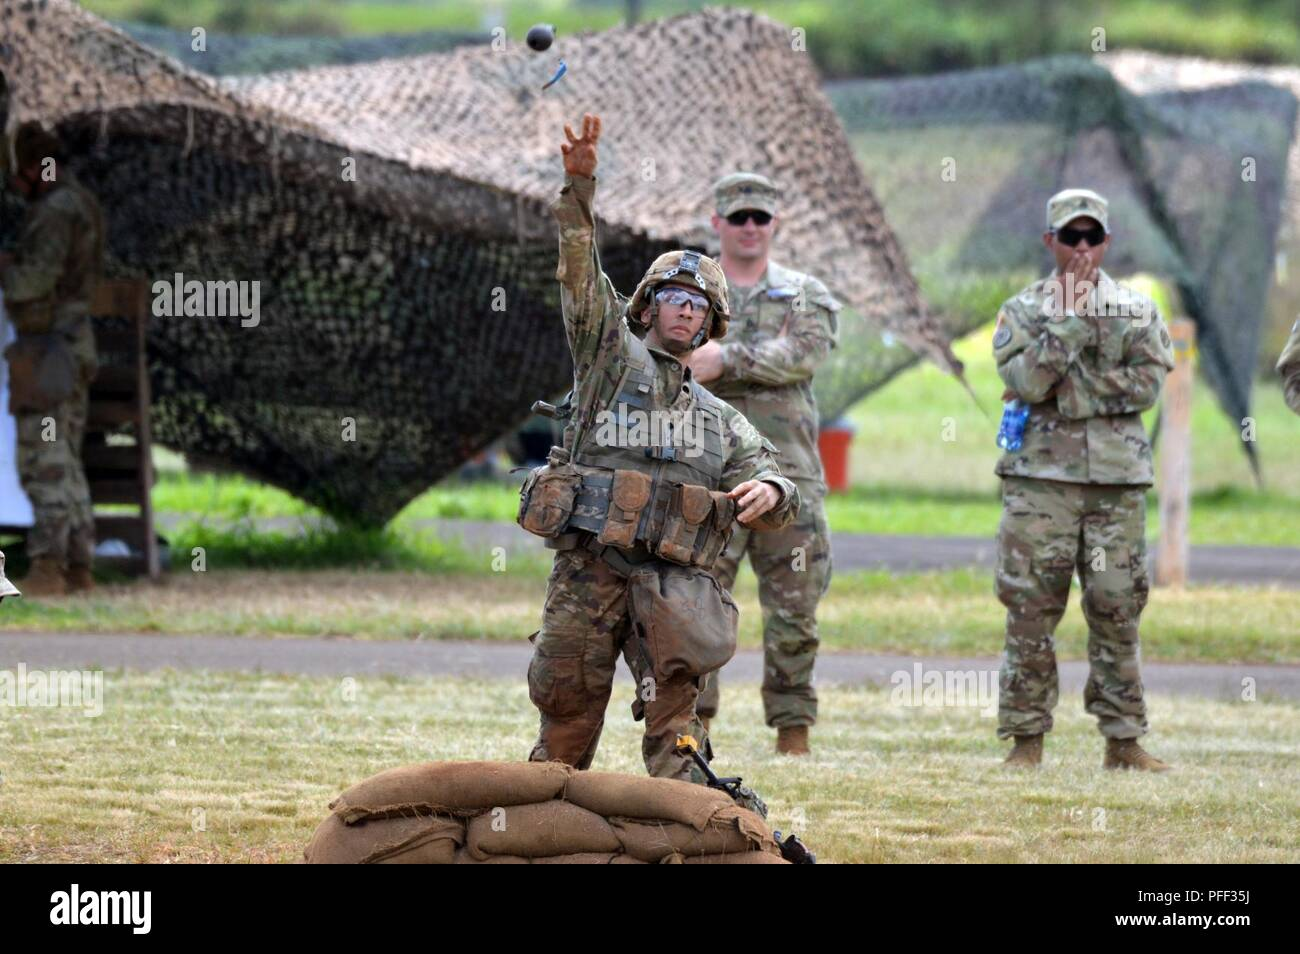 A Soldier assigned to the 25th Infantry Division tosses a